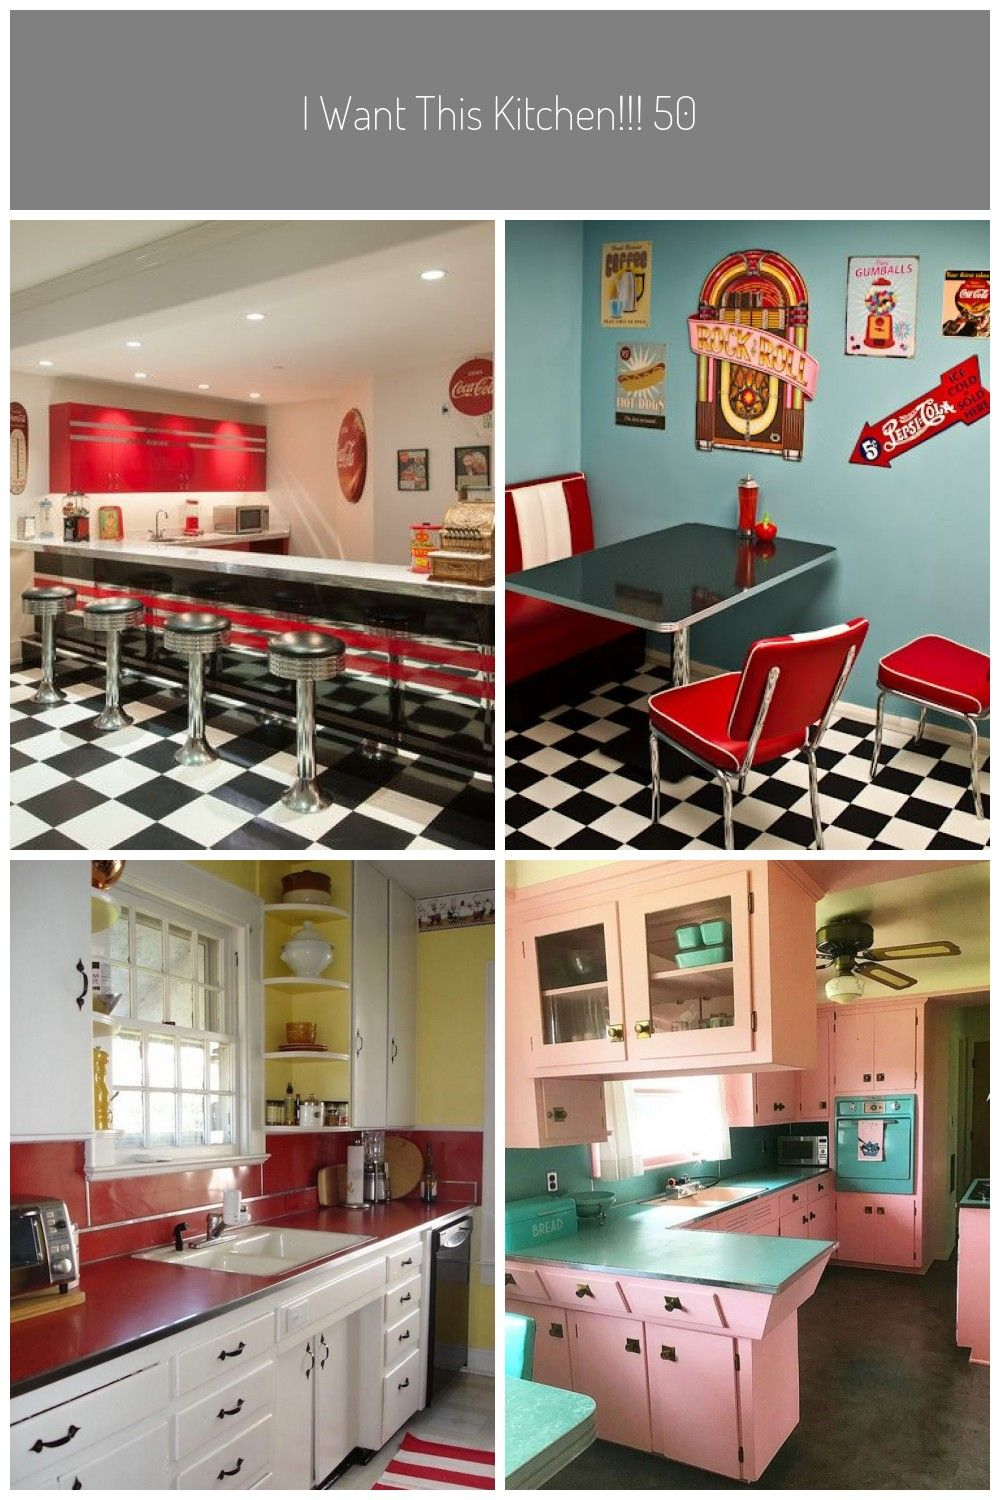 I Want This Kitchen 50s Kitchen Decorating Ideas Cool 50s Diner Kitchen Decor Cool 50 S Diner Kit 50s Diner Kitchen Kitchen Diner 50s Style Kitchens